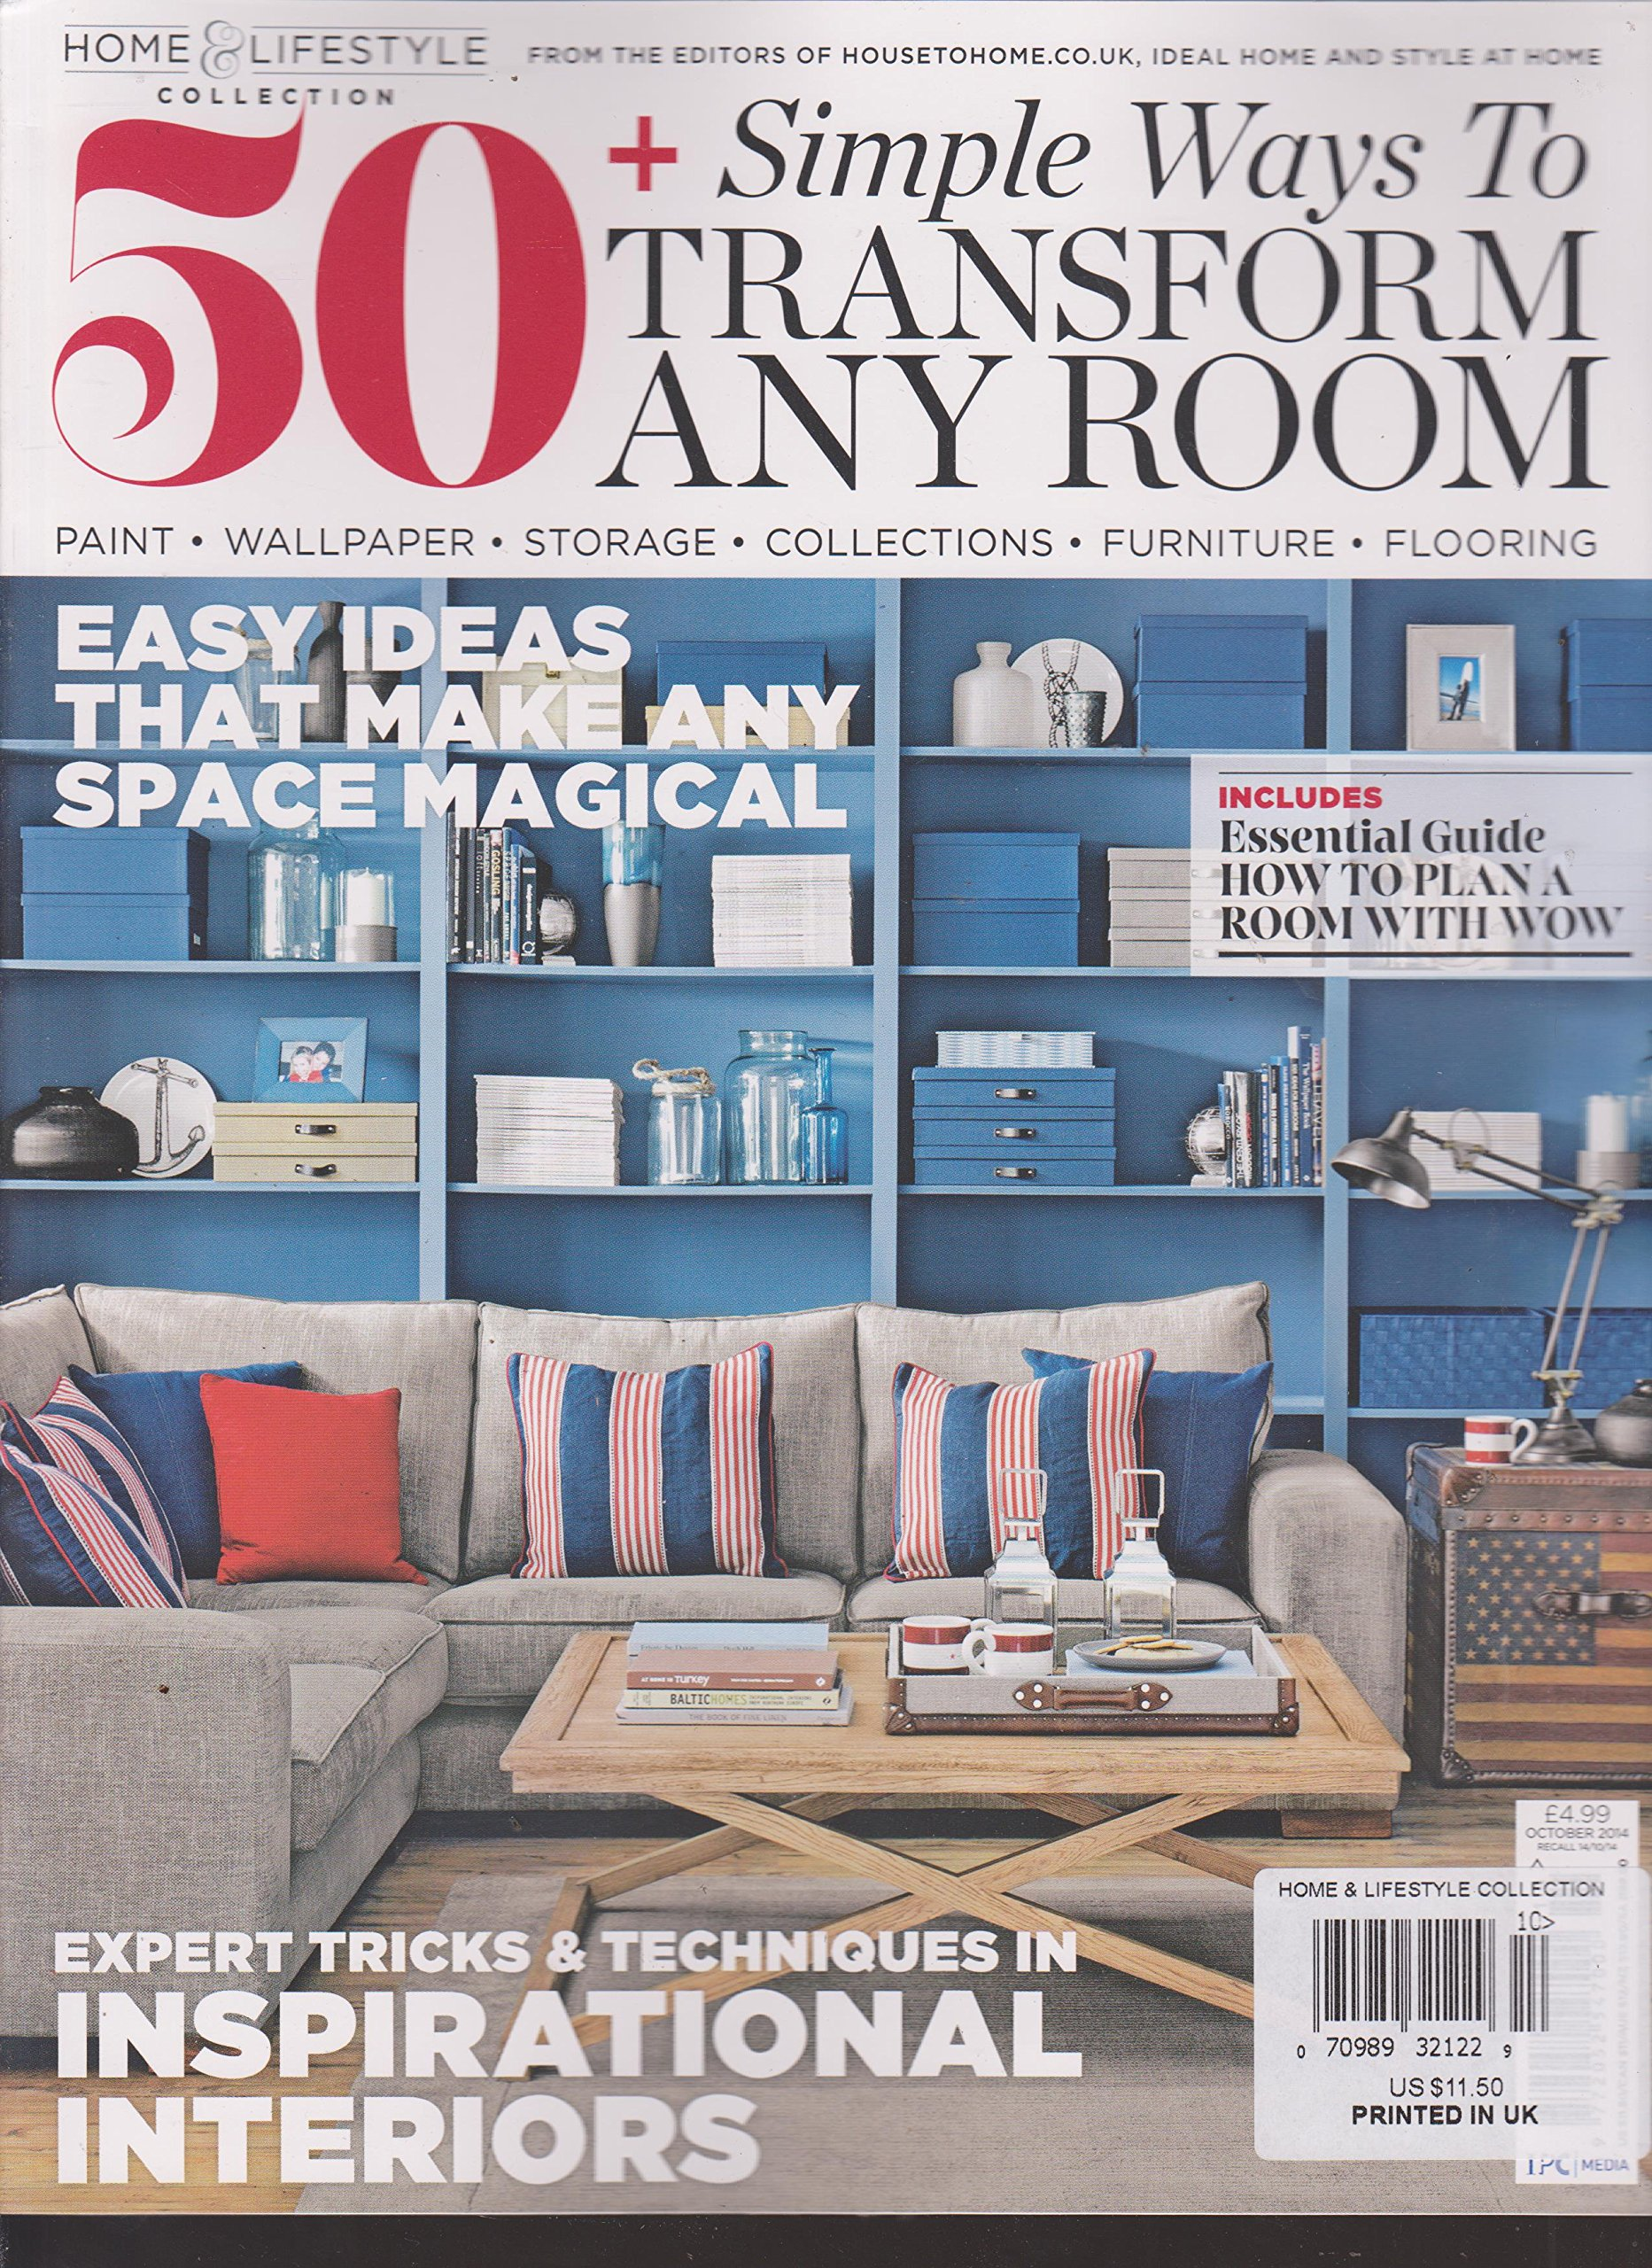 Download Home & Lifestyle Collection 50+ Simple Ways to Transform Any Room Magazine ebook